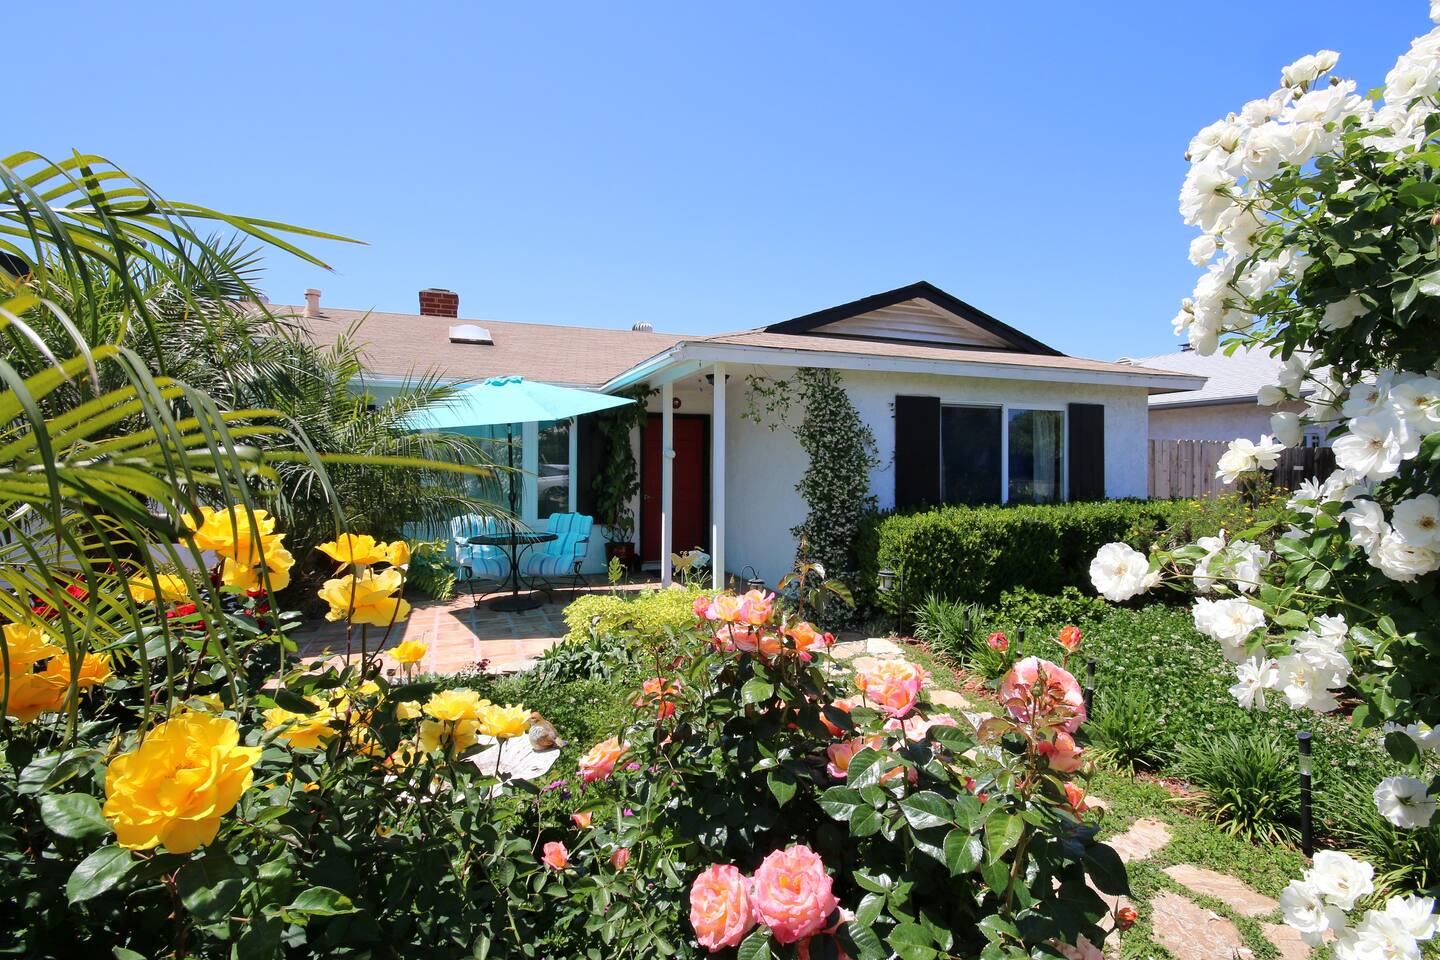 Roses are in full bloom in the front and we have a breakfast spot to watch.